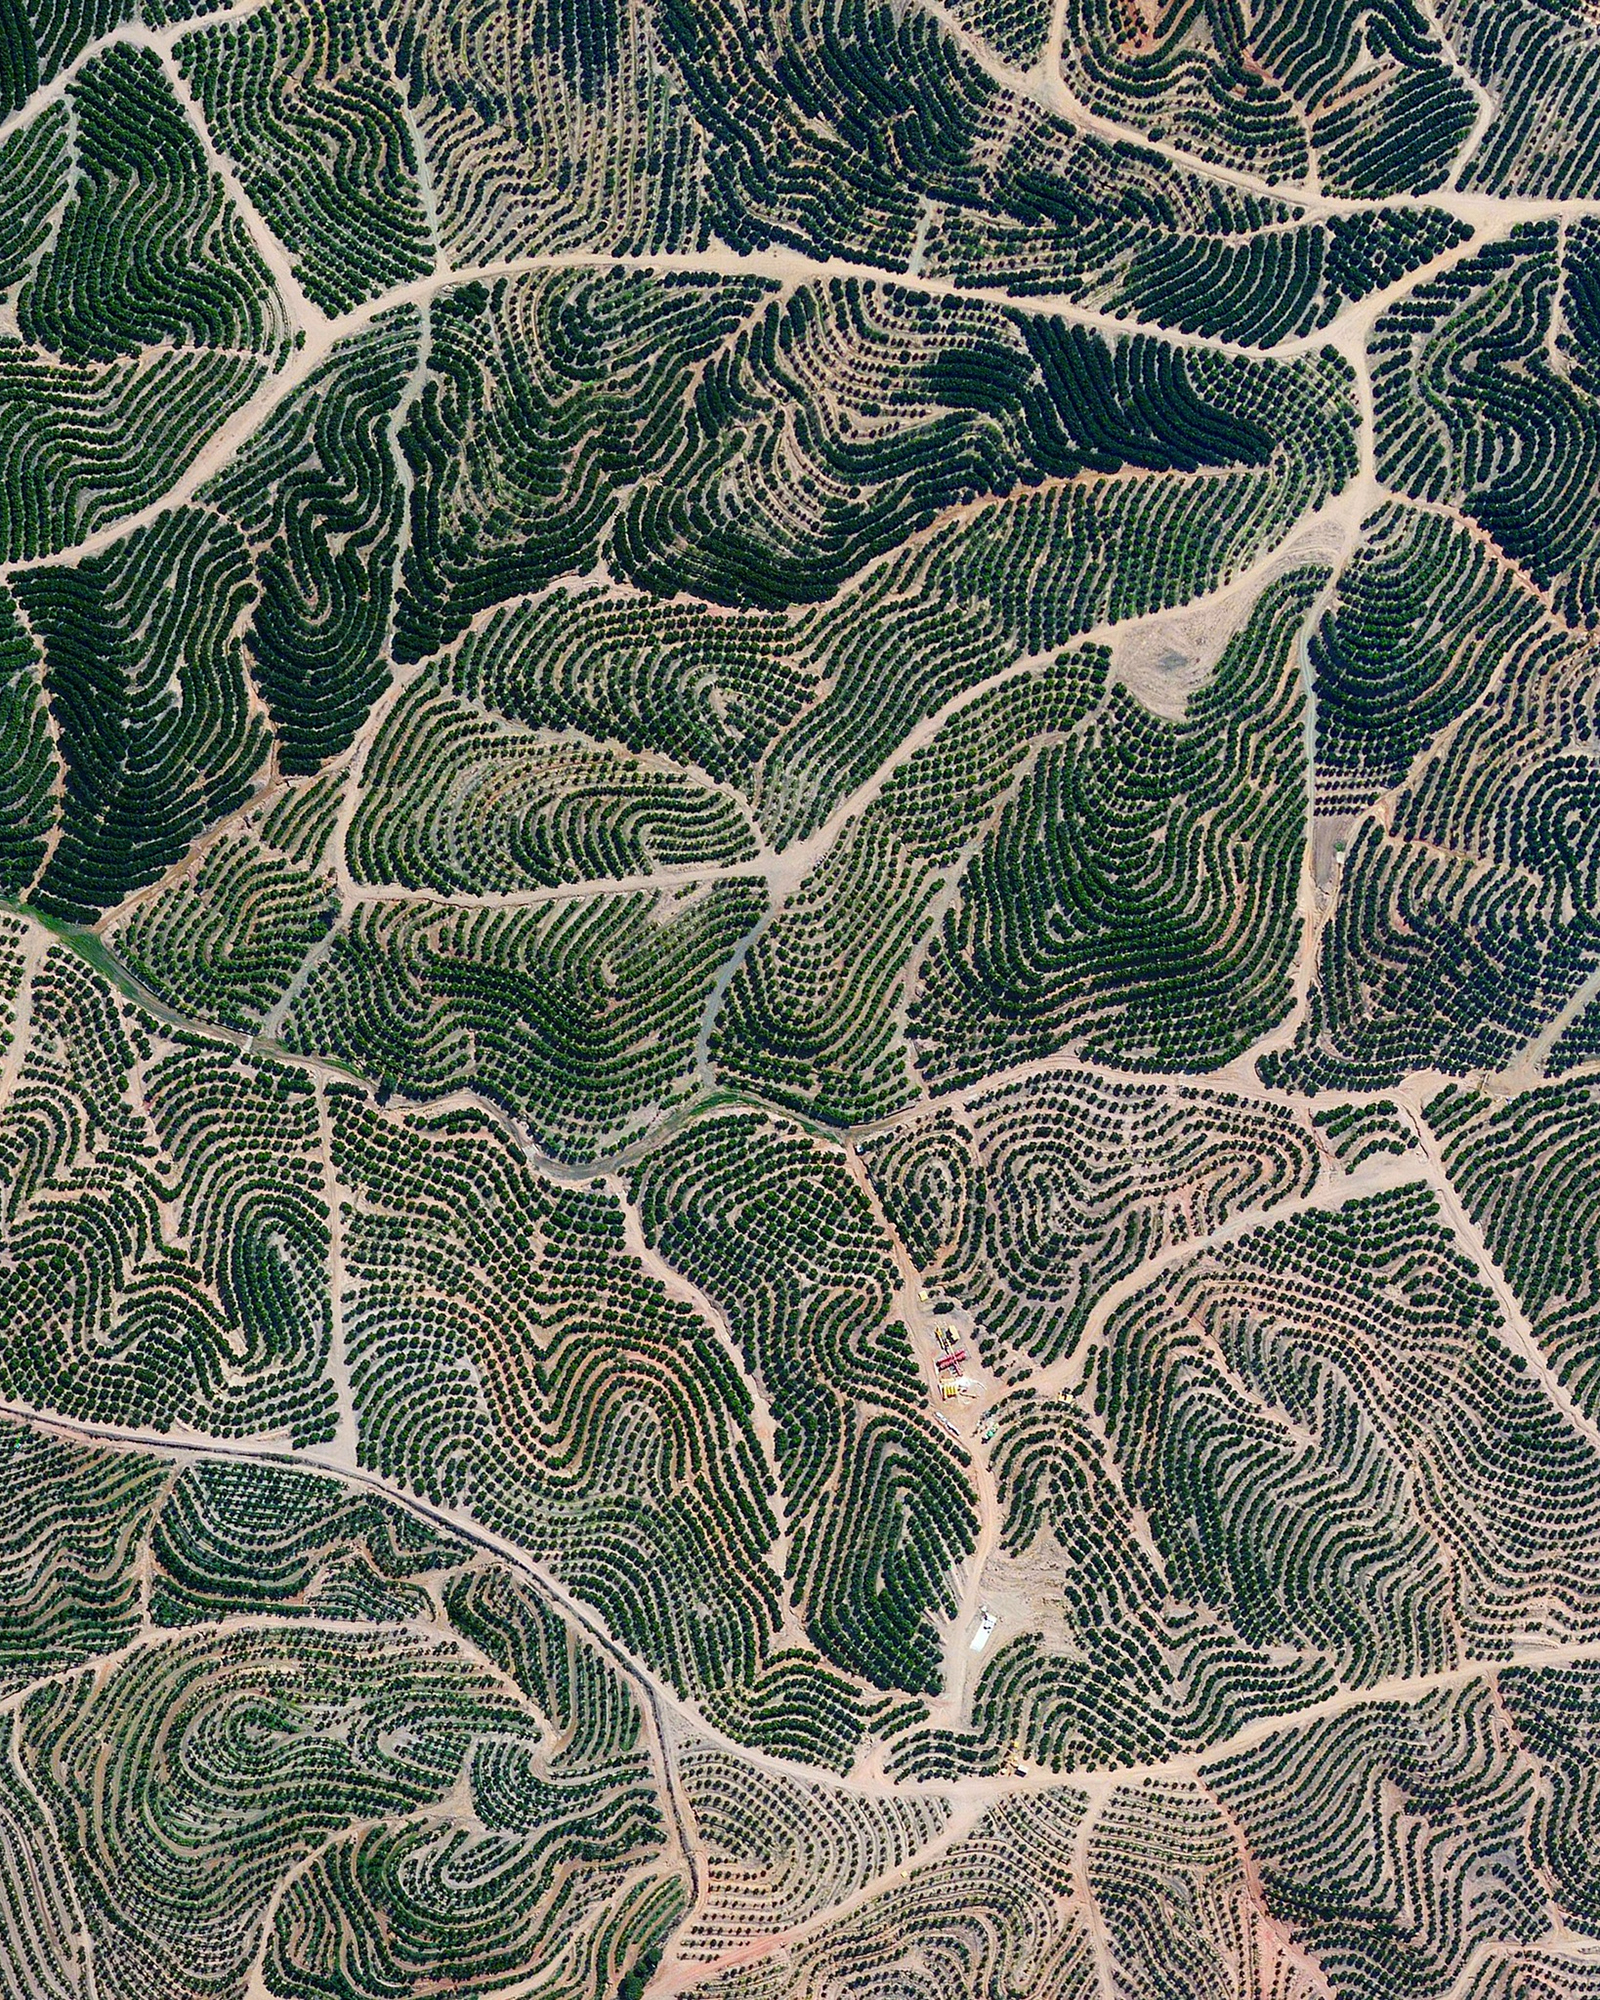 Citrus trees cover the landscape like fingerprints in Isla Cristina, Spain. The climate in this region is ideal for the growth of this produce with an average temperature of 64 degrees (18° celsius) and a relative humidity between 60% and 80%.  37.241139, -7.294472  Source imagery: Maxar Technologies